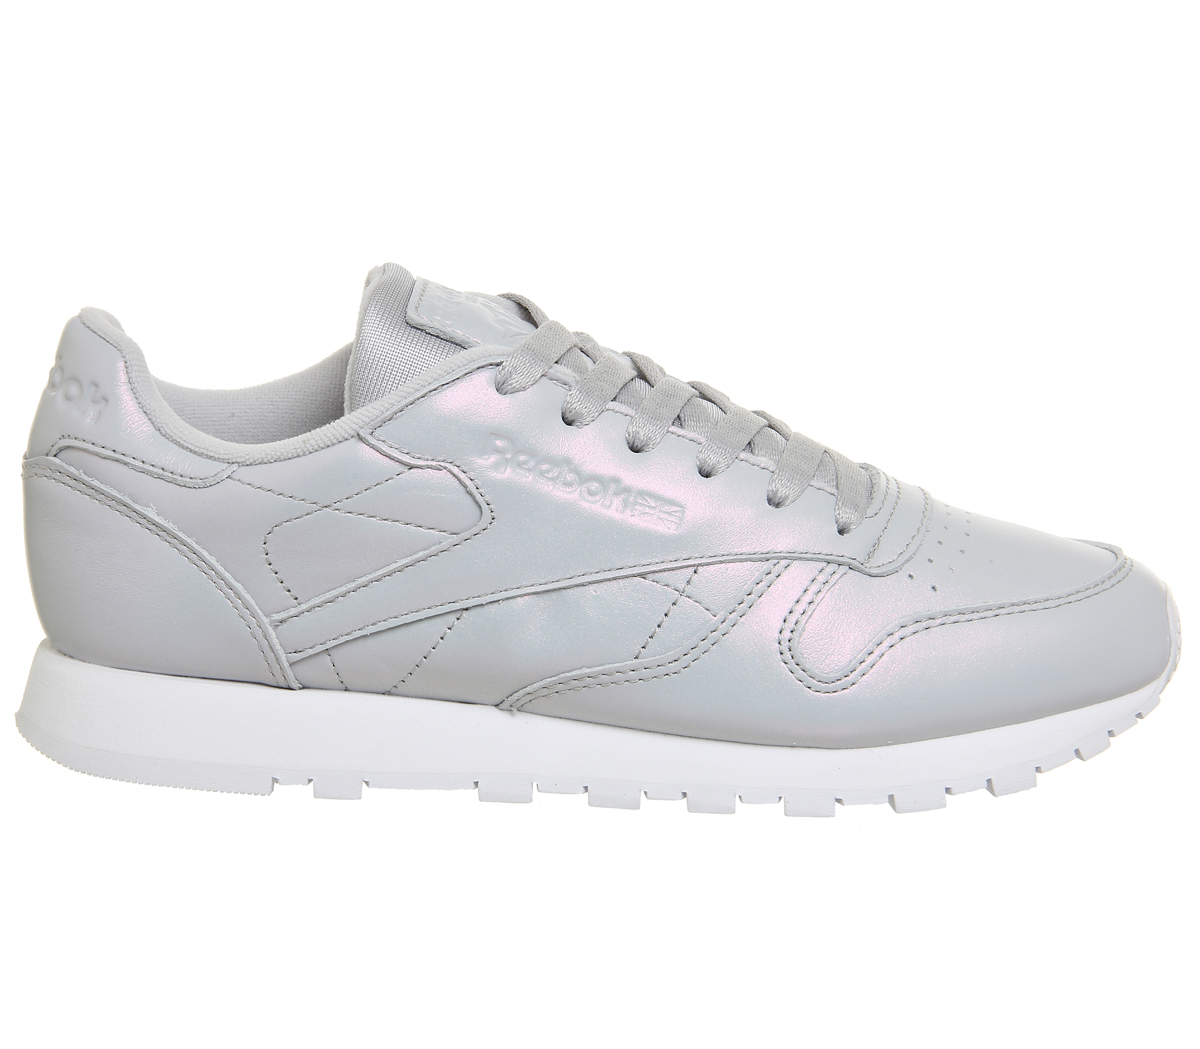 Sentinel Womens Reebok Cl Leather Trainers GREY PEARLISED Trainers Shoes ac2b96dc2ea6